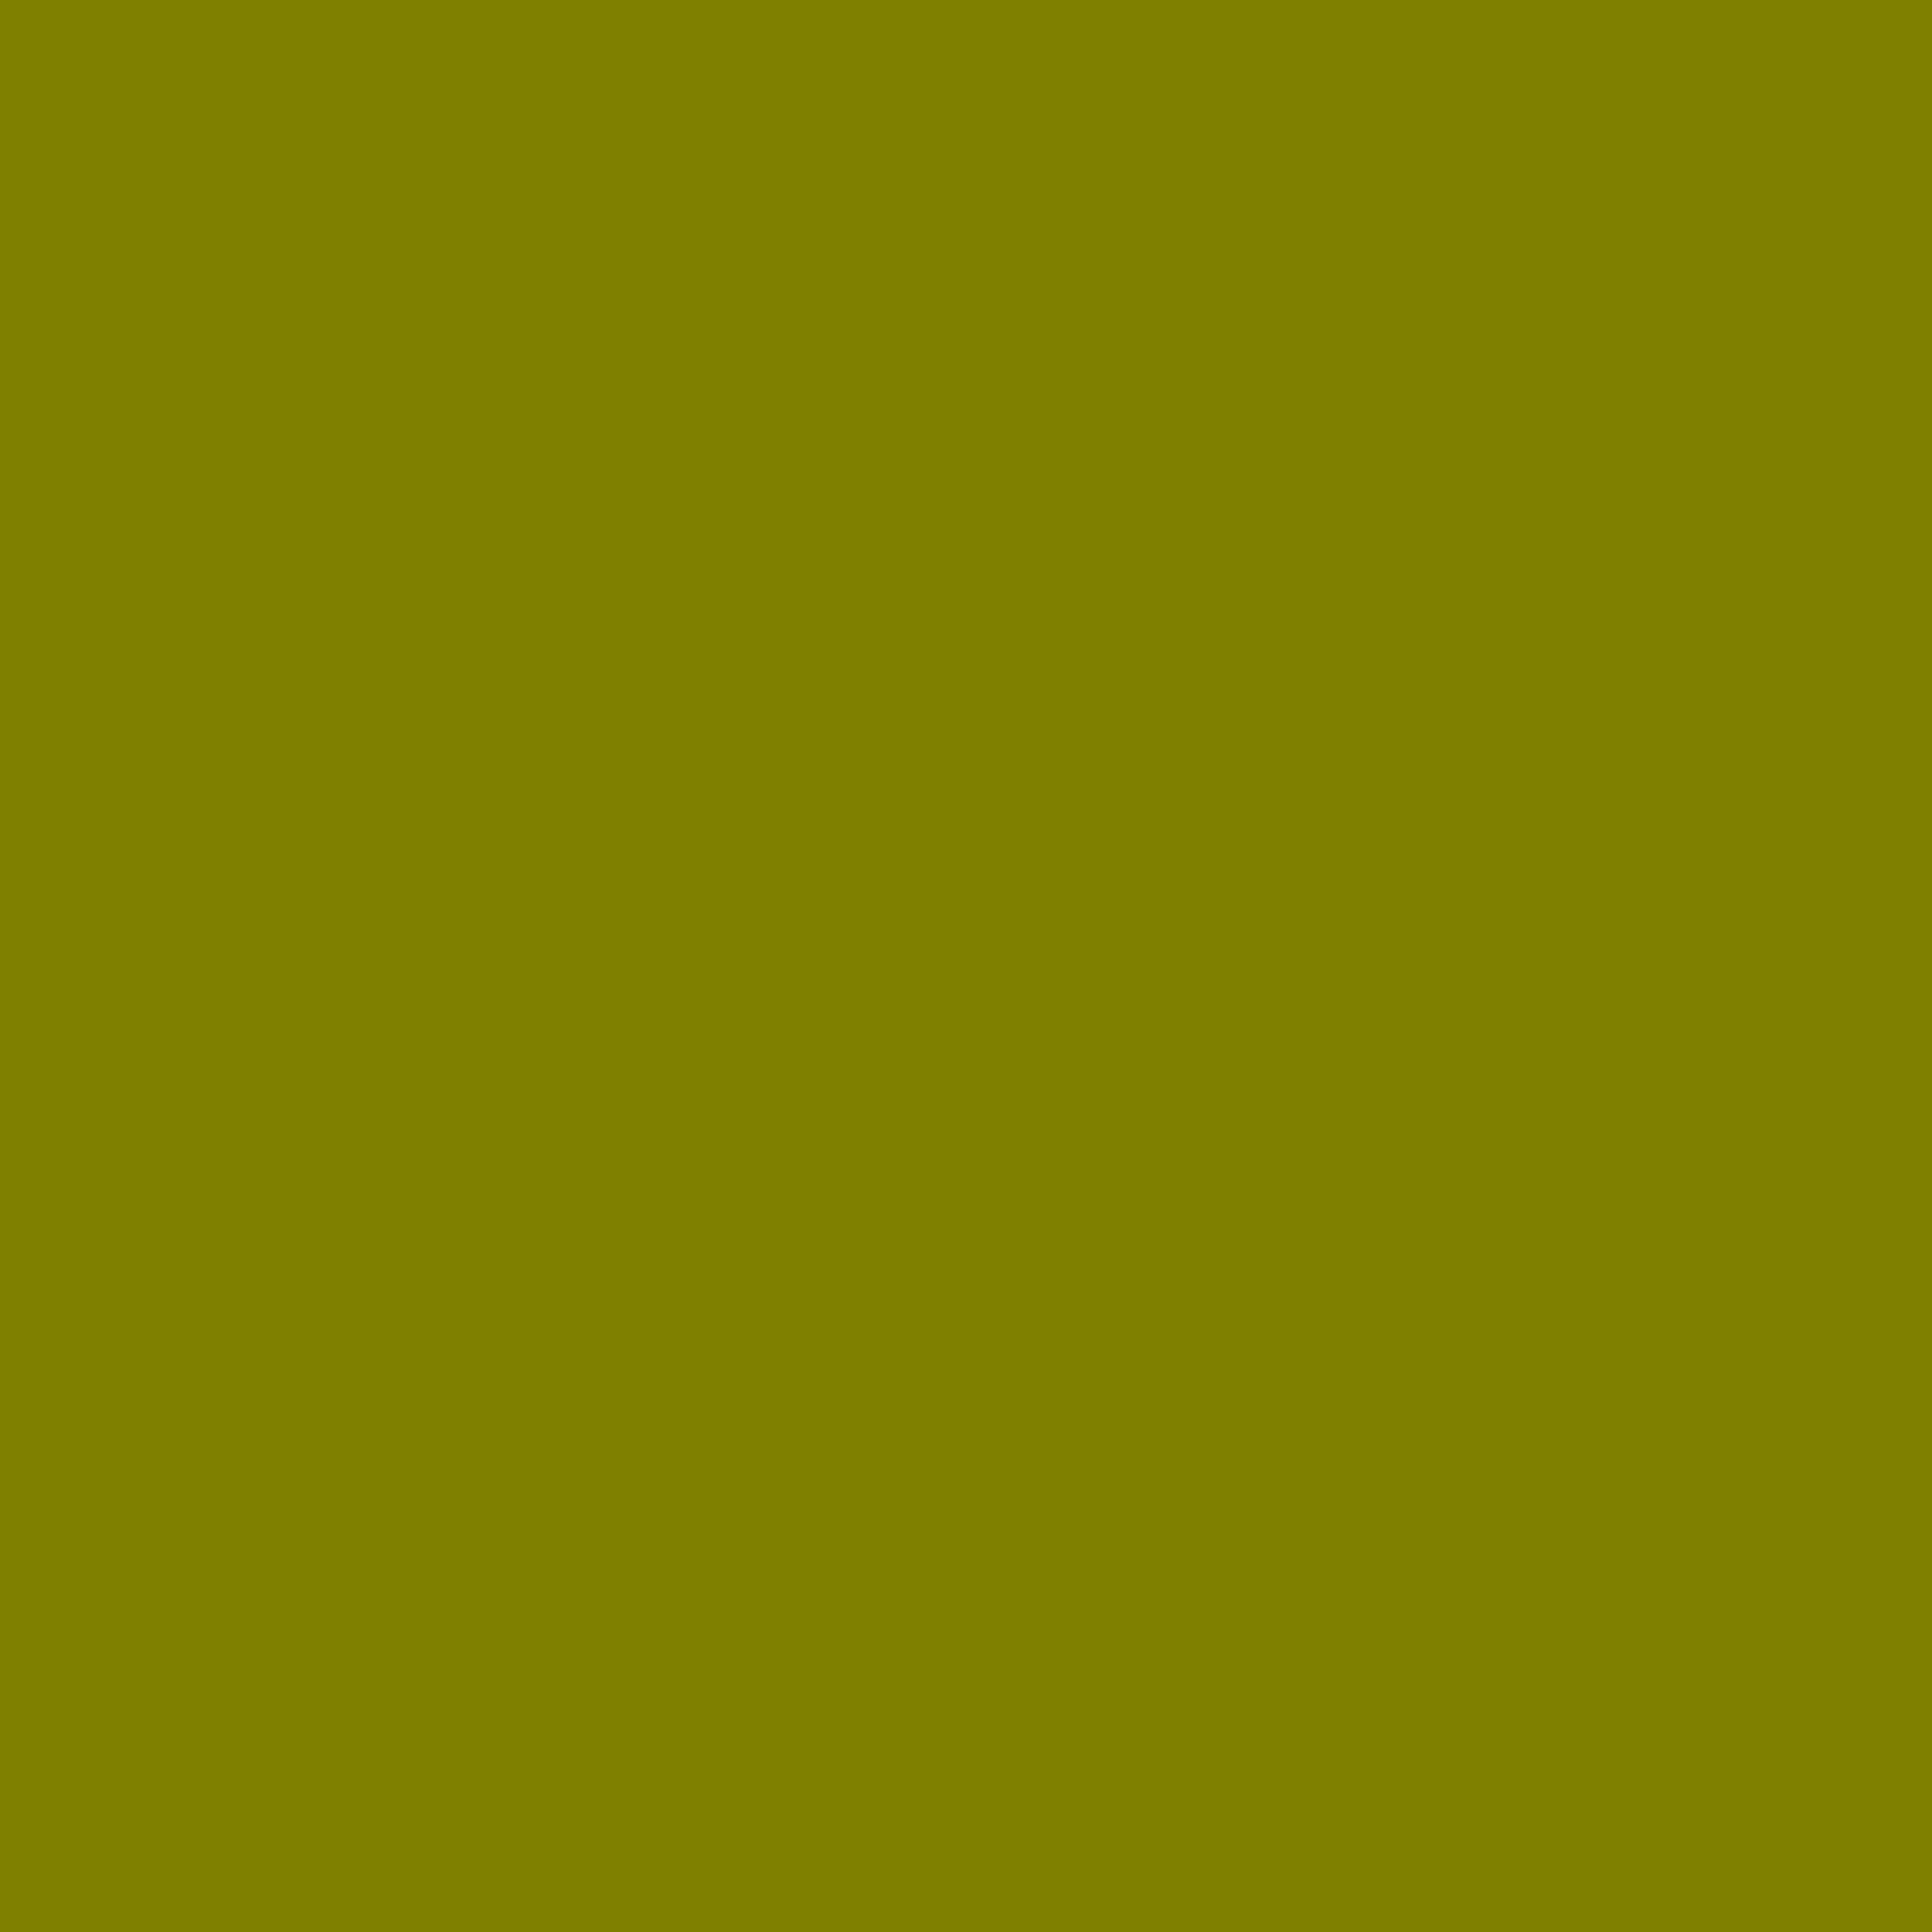 3600x3600 Heart Gold Solid Color Background